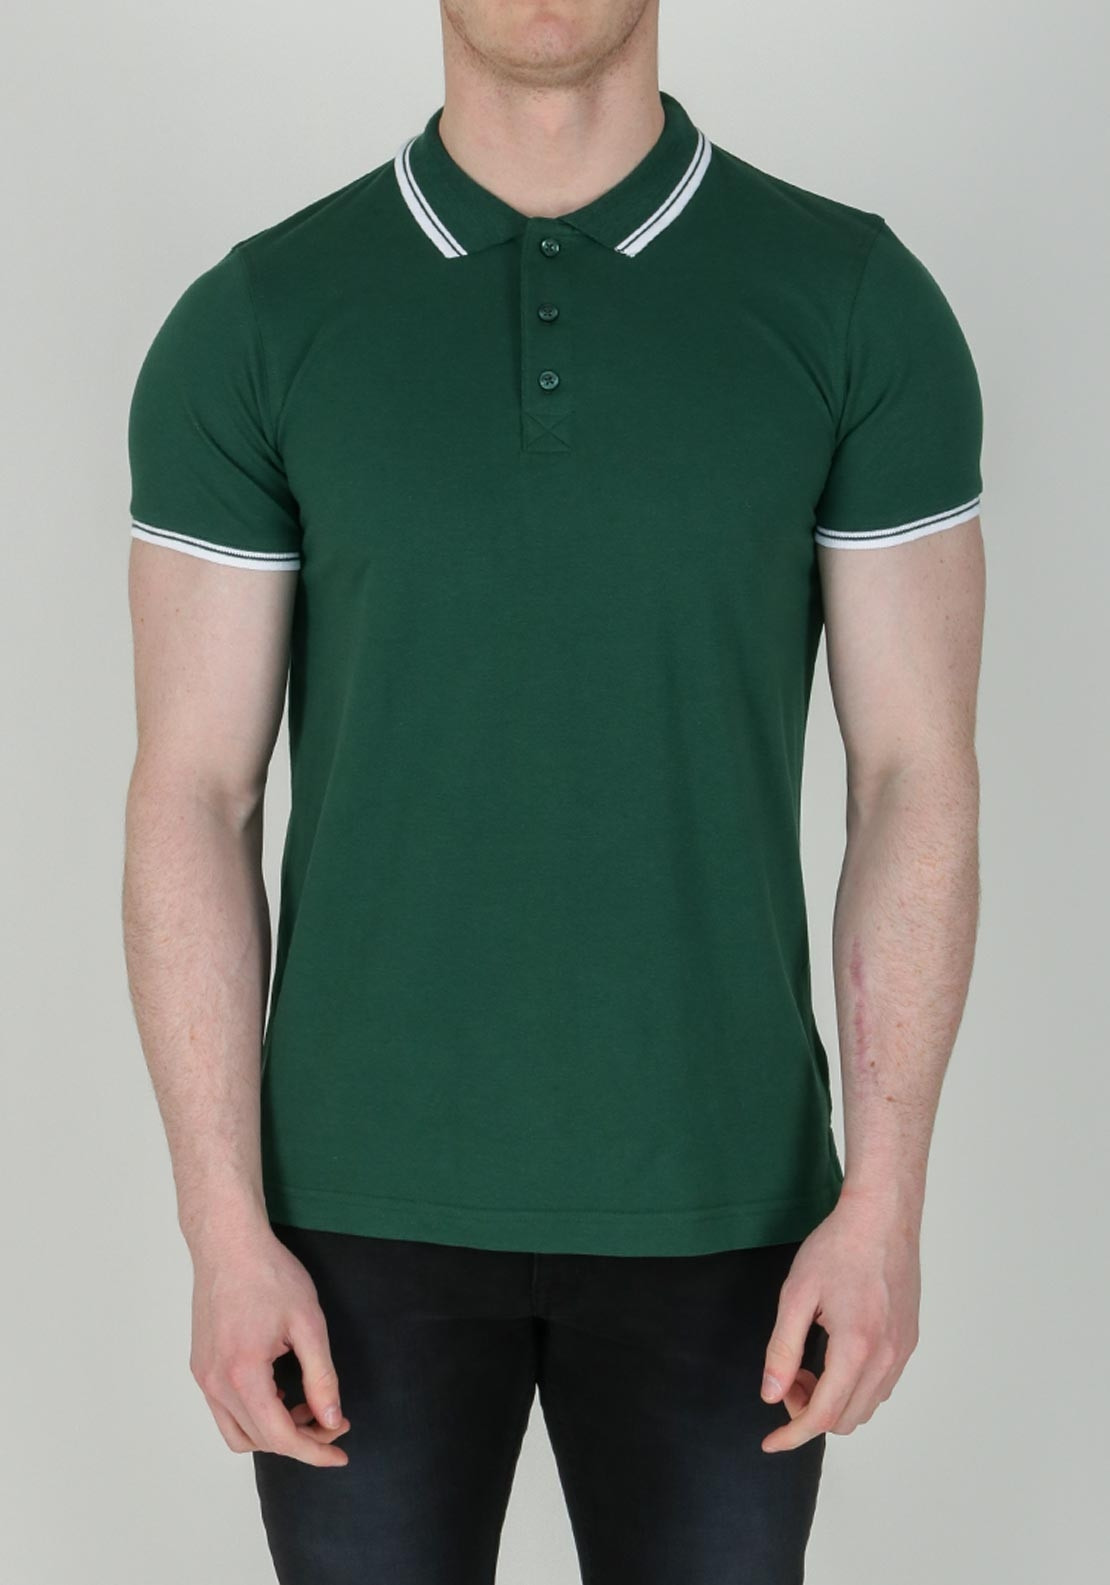 e7eec9f7f Brave Soul London Stripe Collar Polo-Shirt, Green. Be the first to review  this product